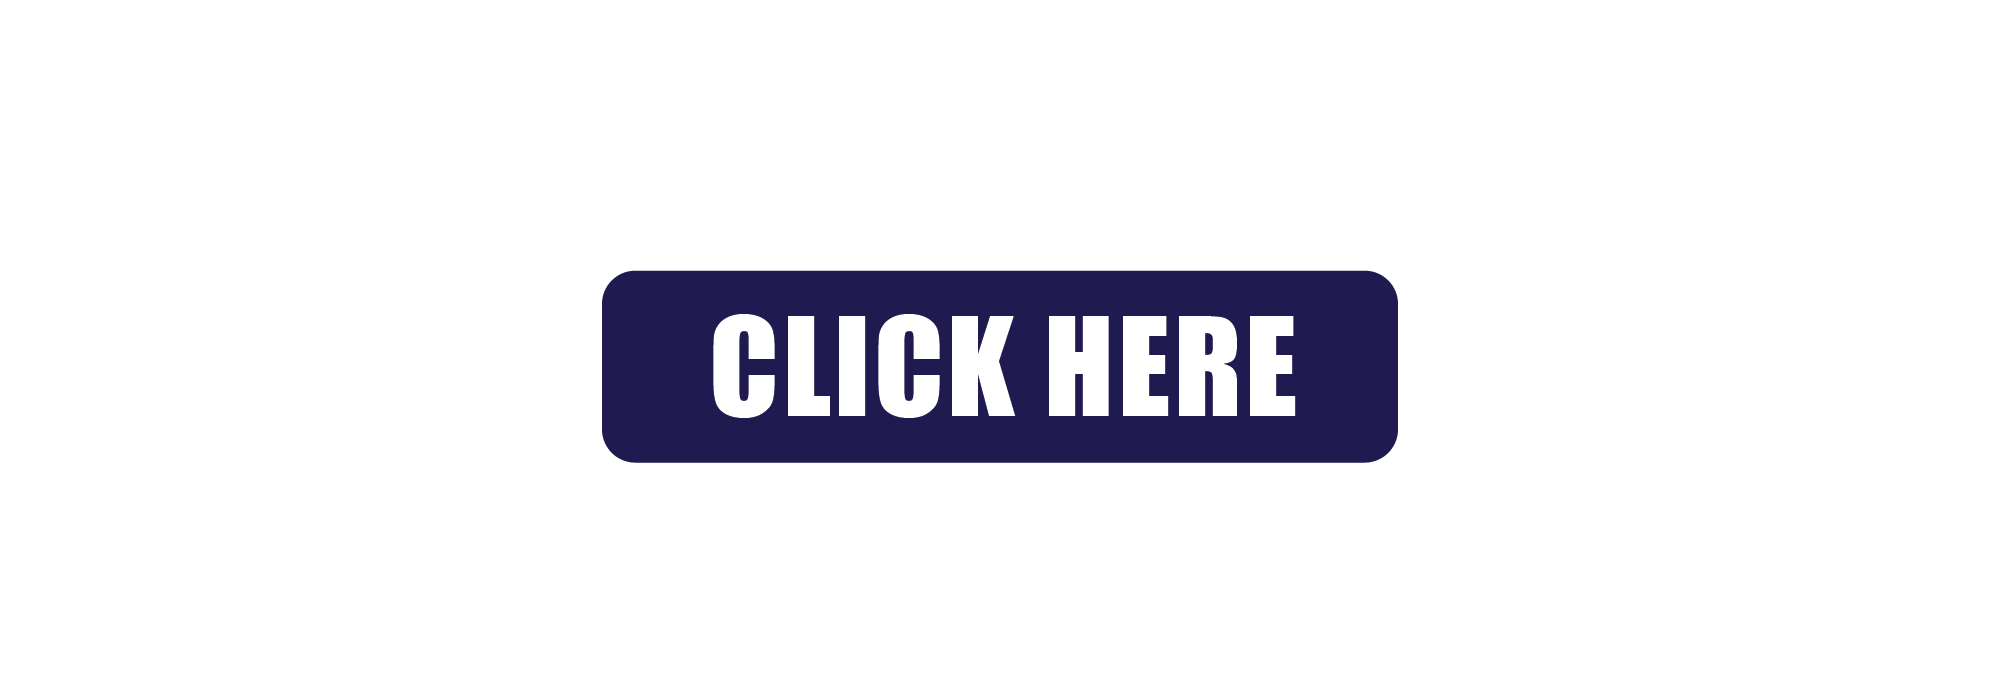 psea_banner_button-03.png